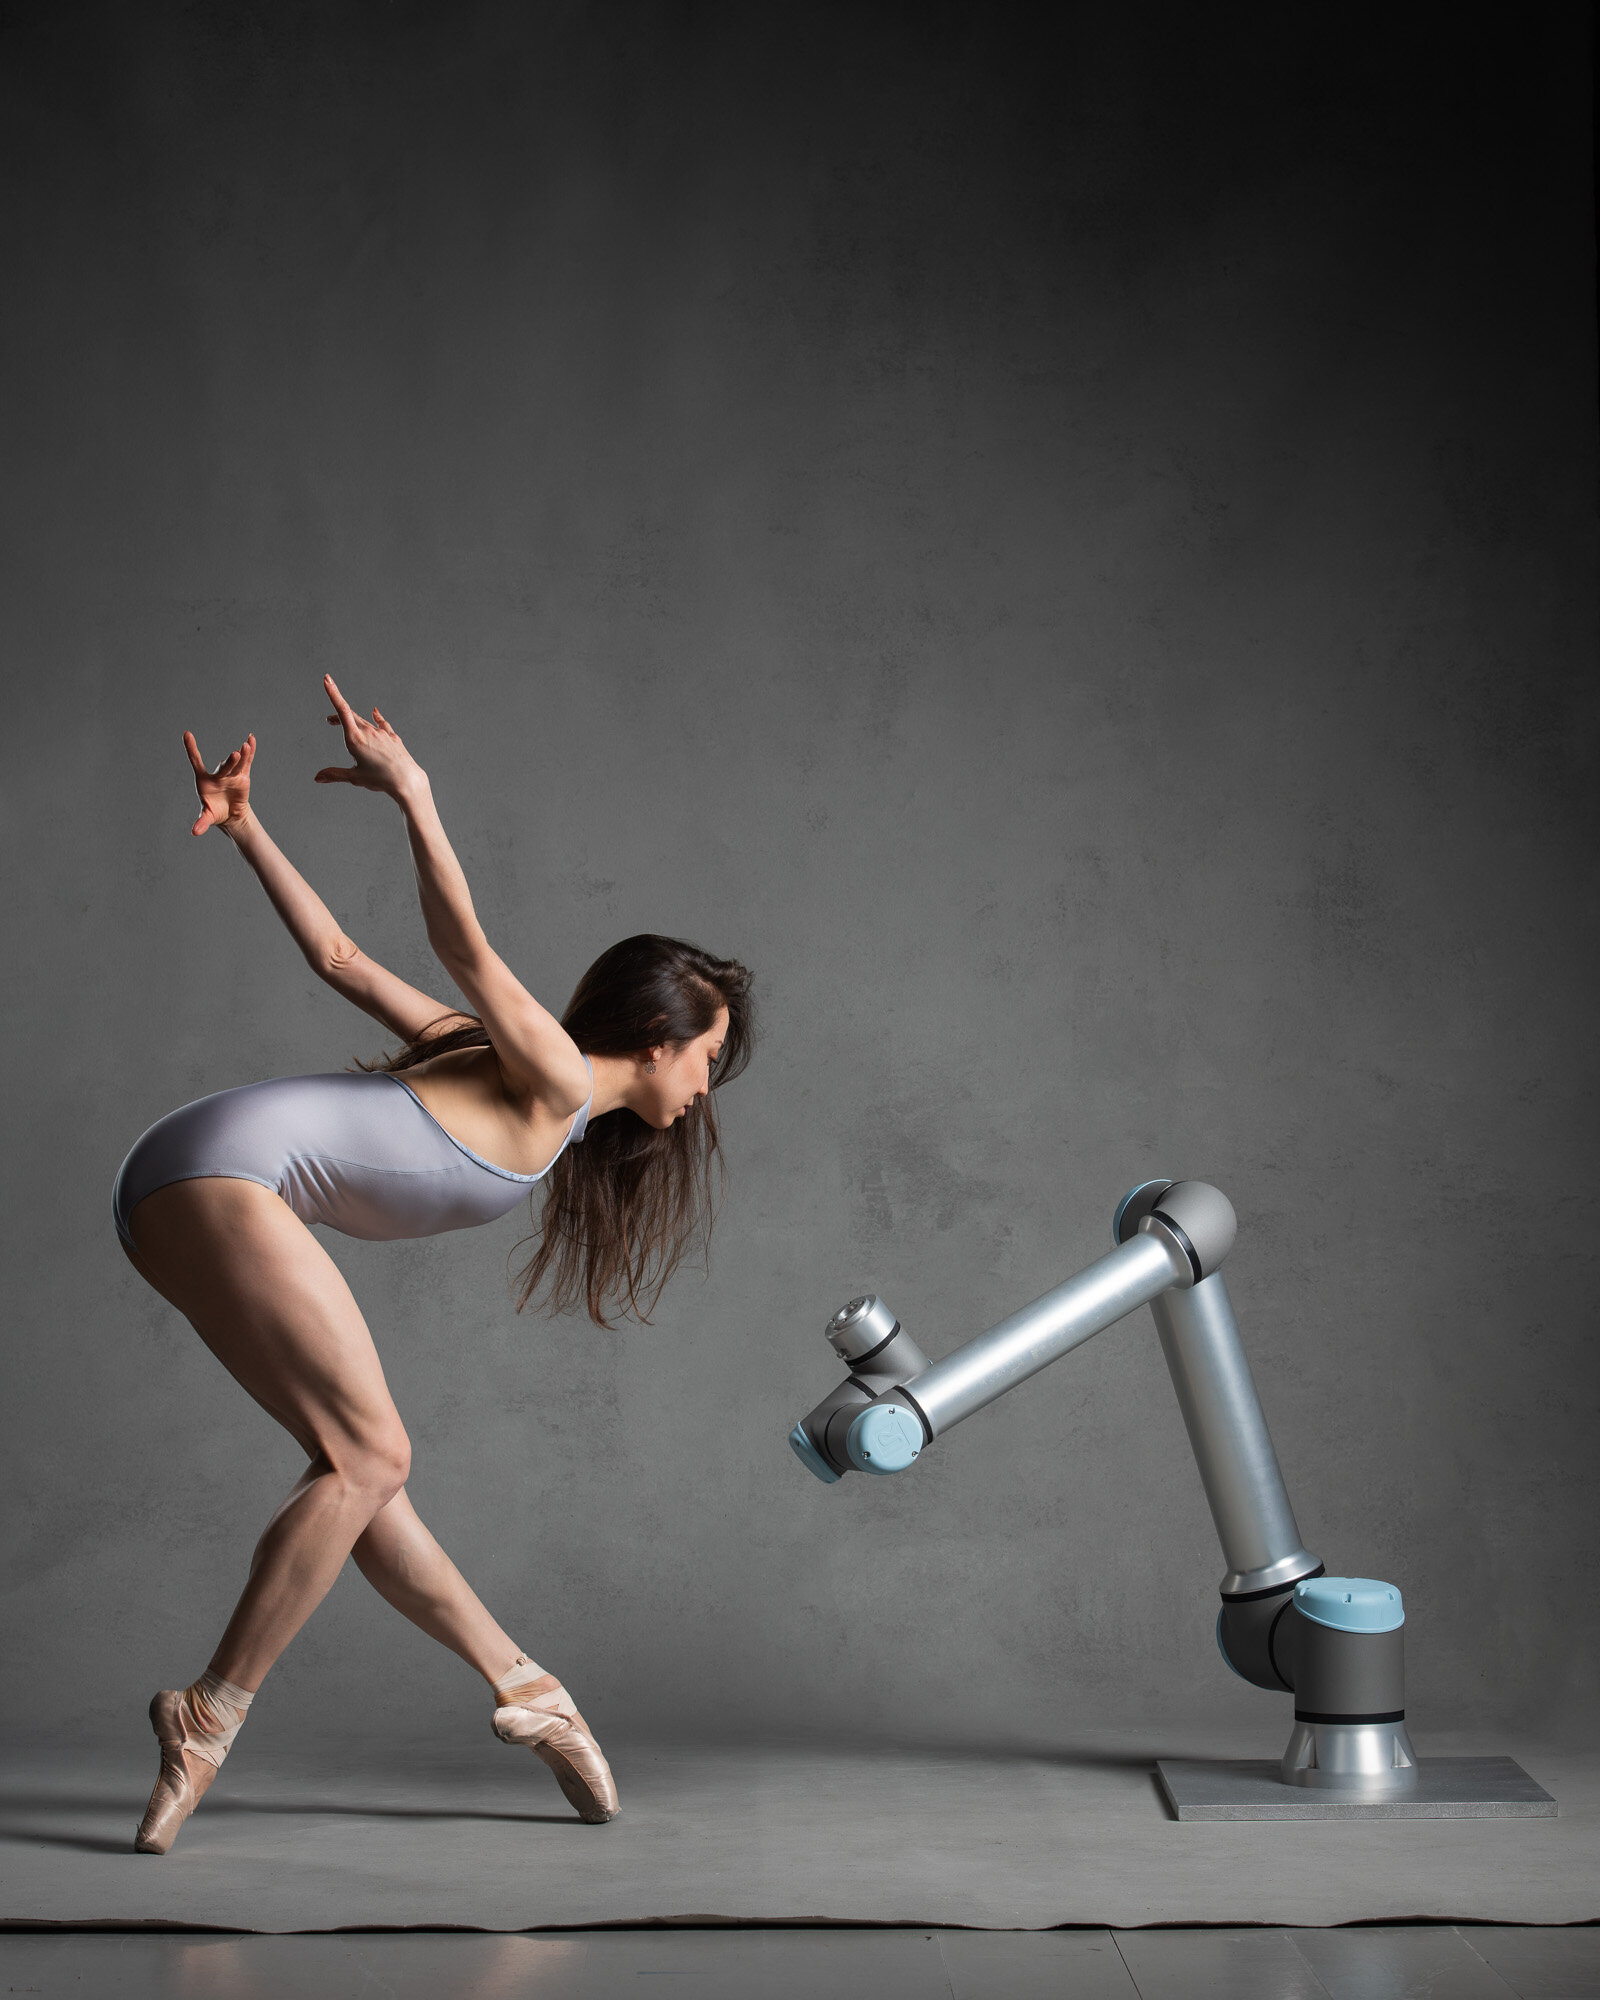 Merritt Moore is a professional ballerina who has danced at an international level with a number of the world's top companies. She is also a quantum physicist who graduated with cum laude honors in physics from Harvard University and with a PhD in Atomic and Laser Physics from the University of Oxford. Photo: Skjalg Bøhmer Vold